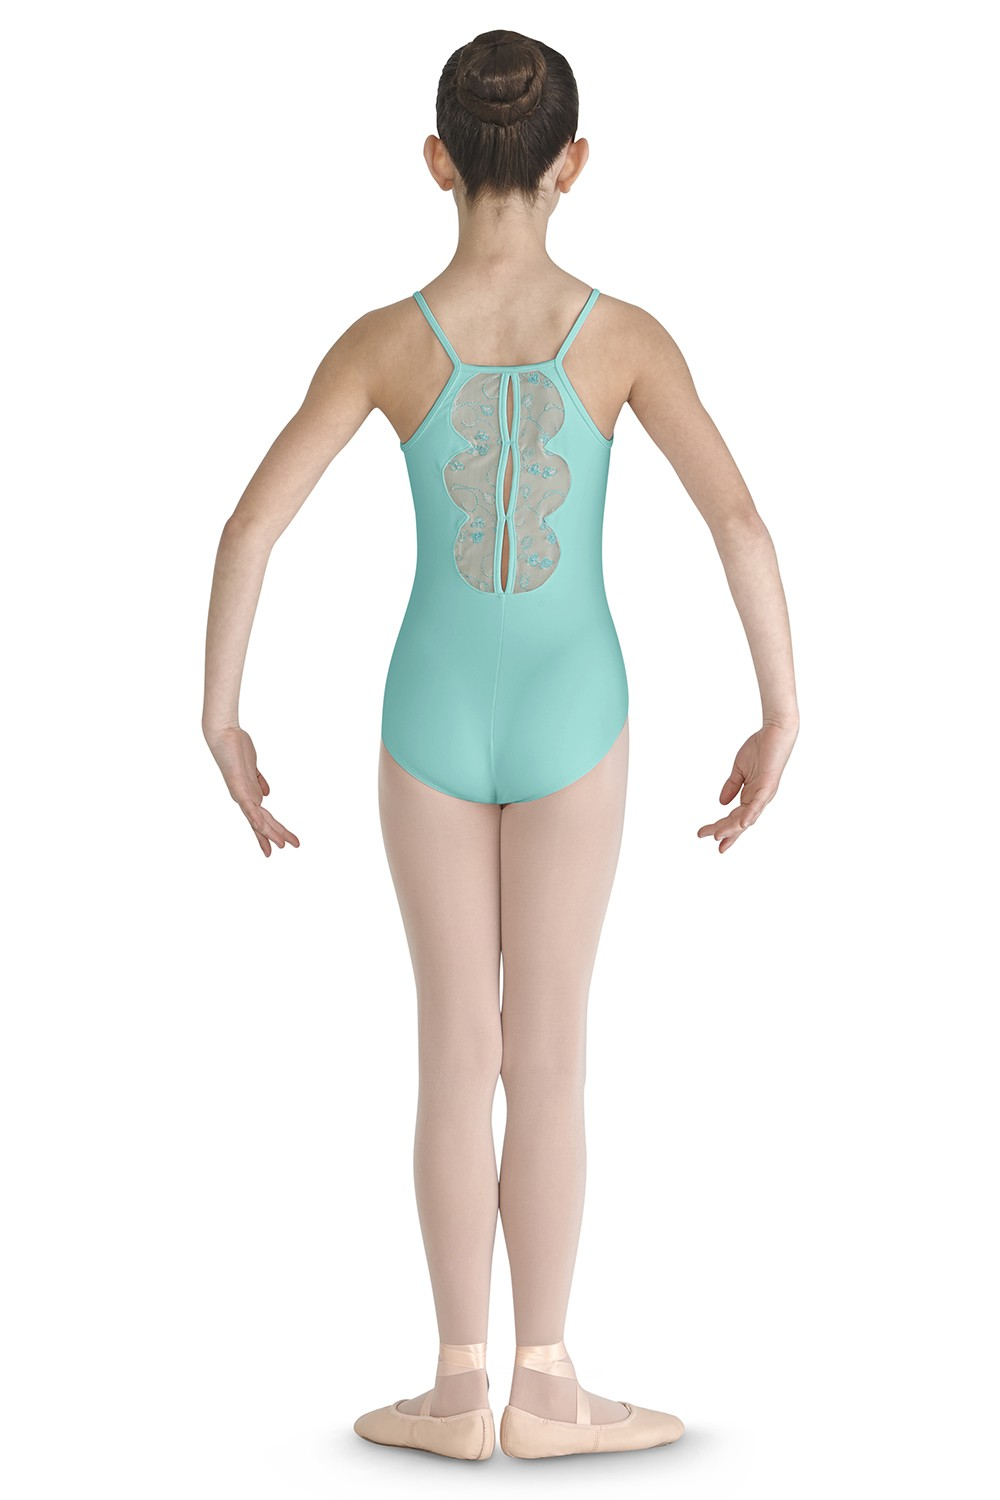 Roseum Children's Dance Leotards